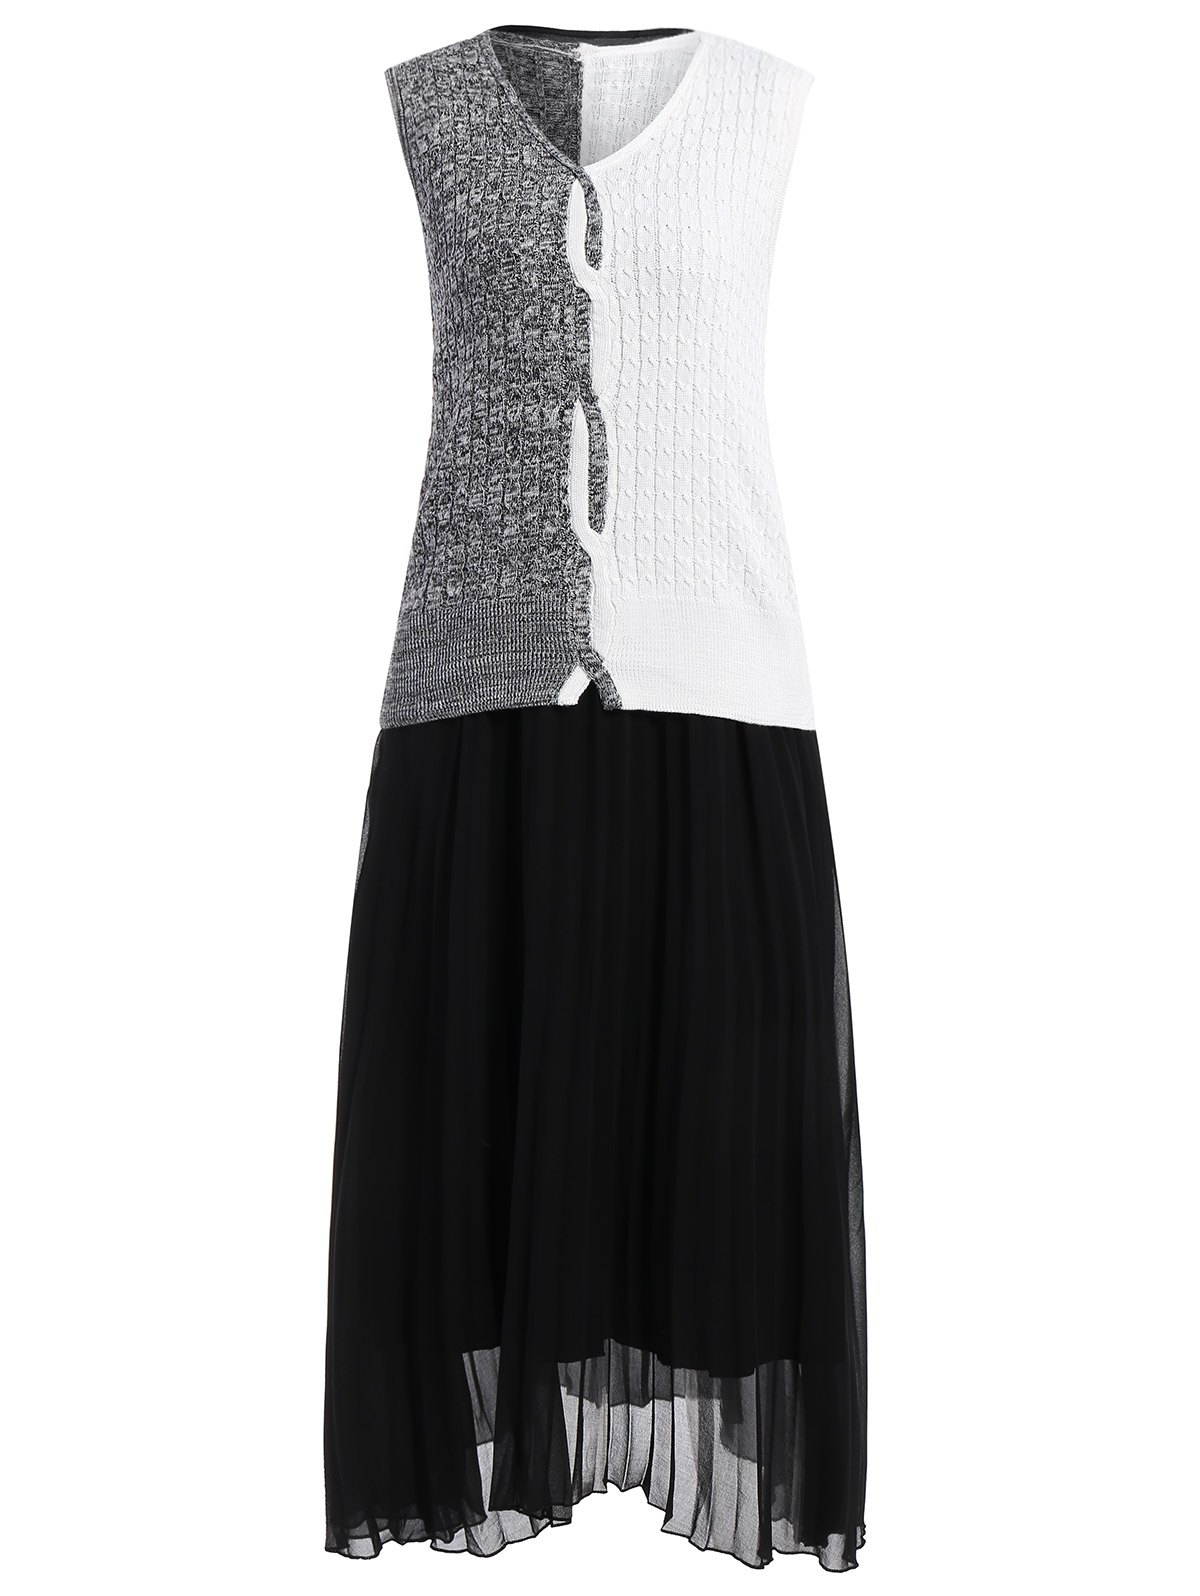 Unique Sleeveless Knitwear and Pleated Dress Twinset